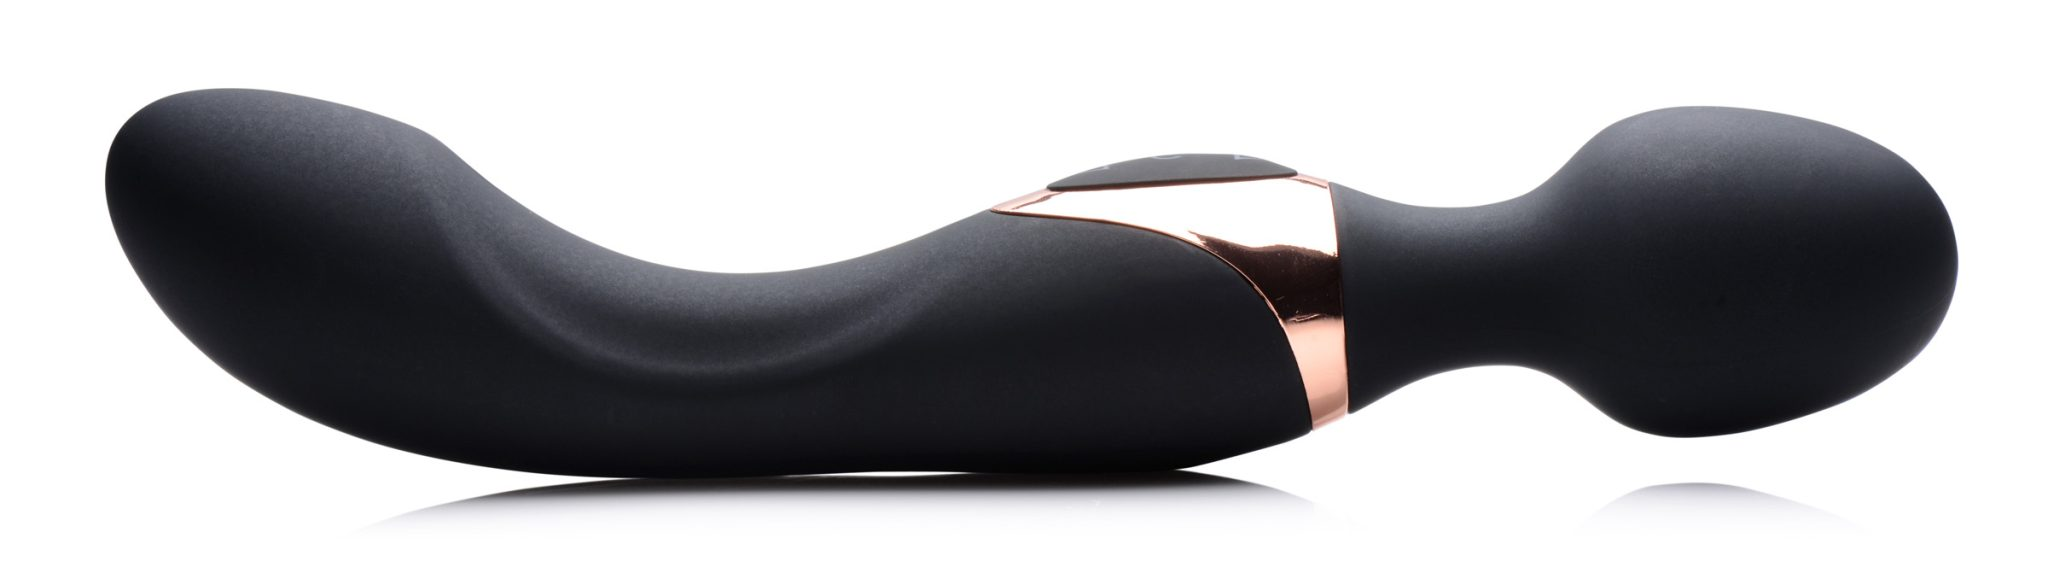 10X Dual Duchess 2-in-1 Silicone Massager – Black